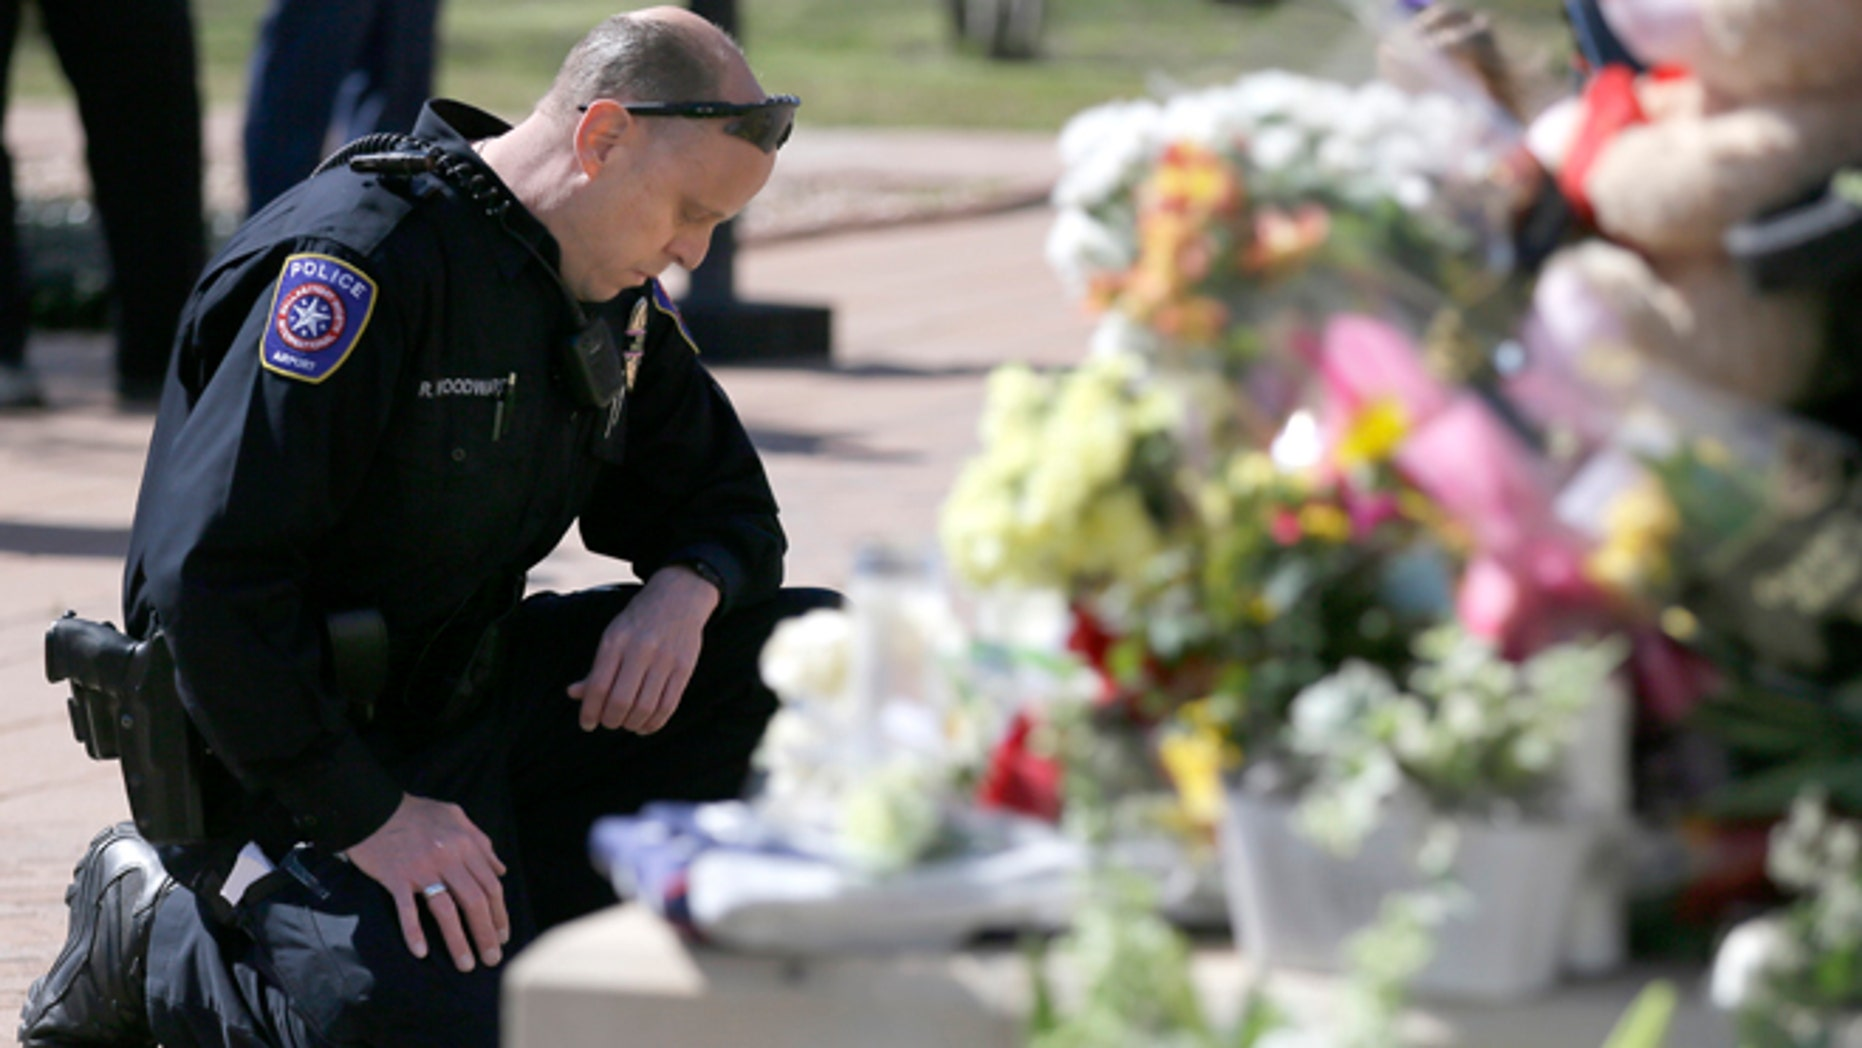 A makeshift memorial for a slain officer at the Euless Police Department  Wednesday, March 2, 2016.